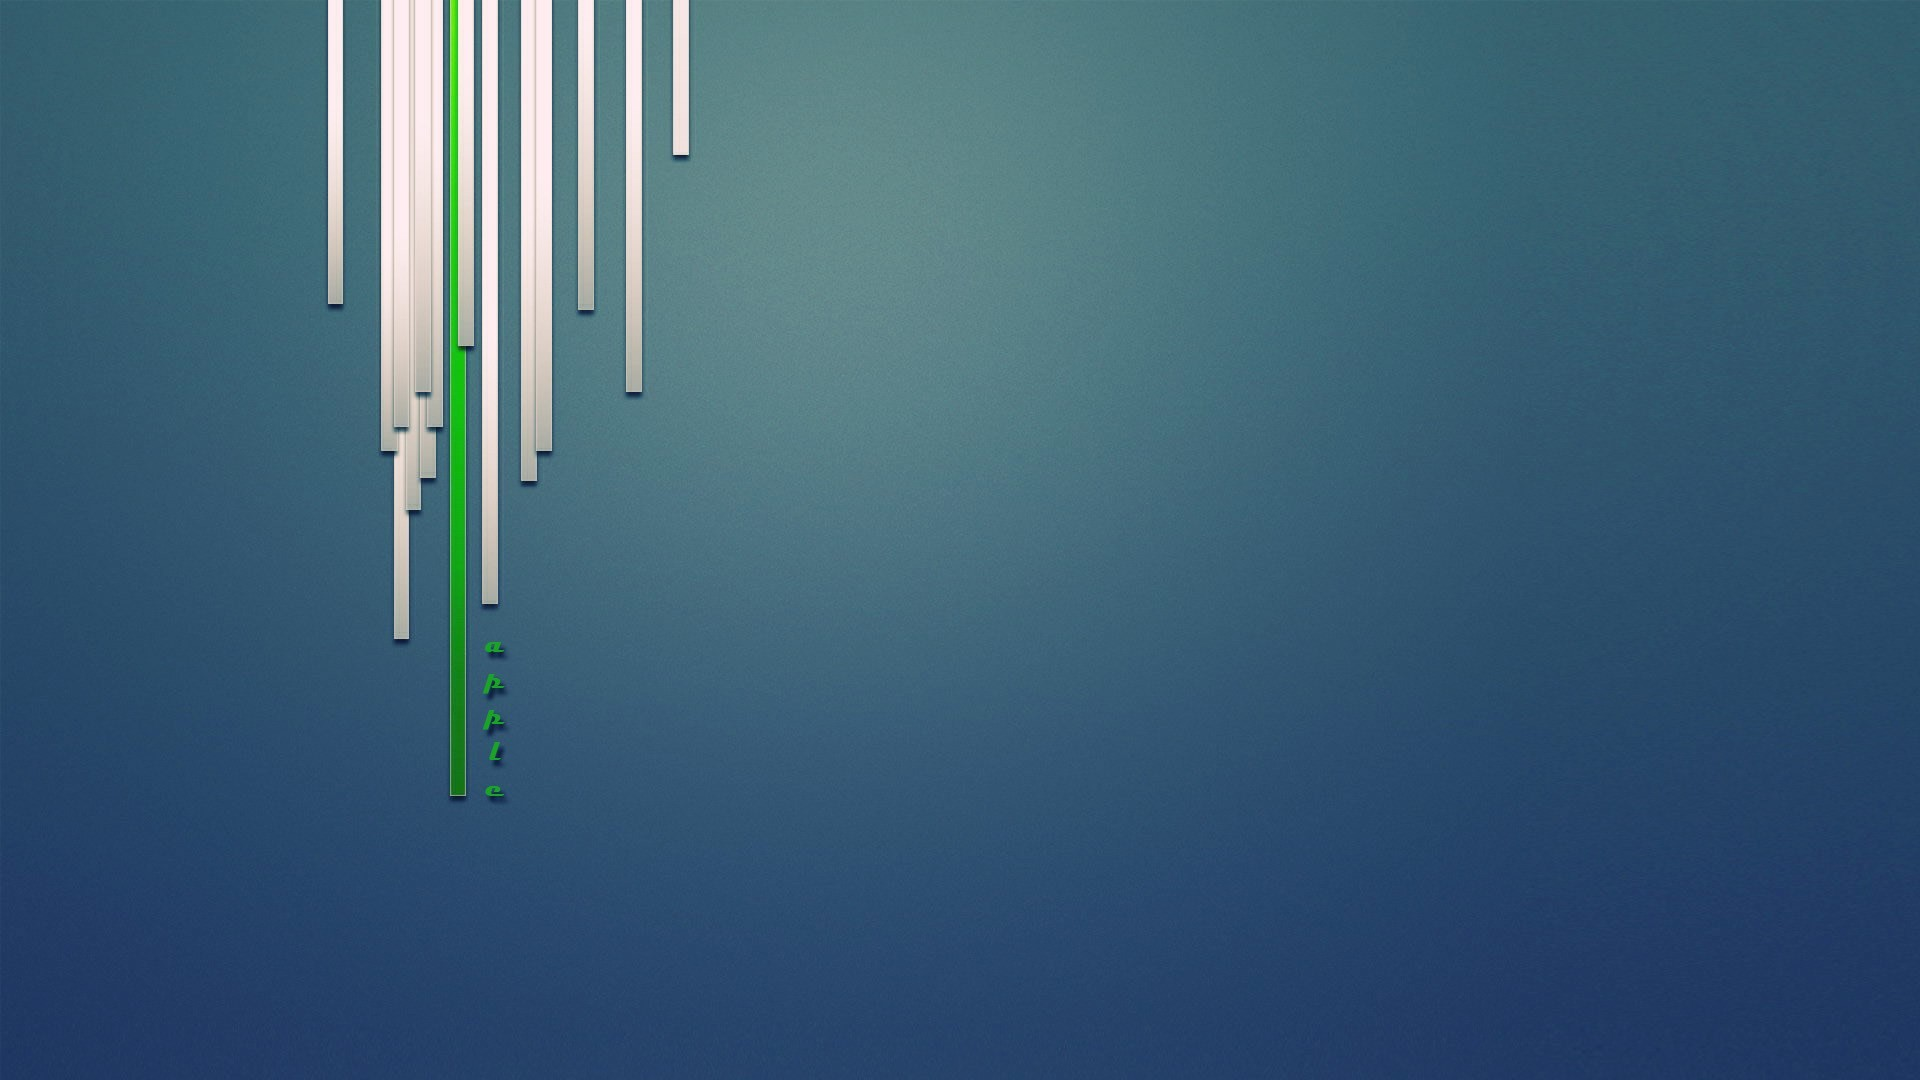 computer networking wallpapers …